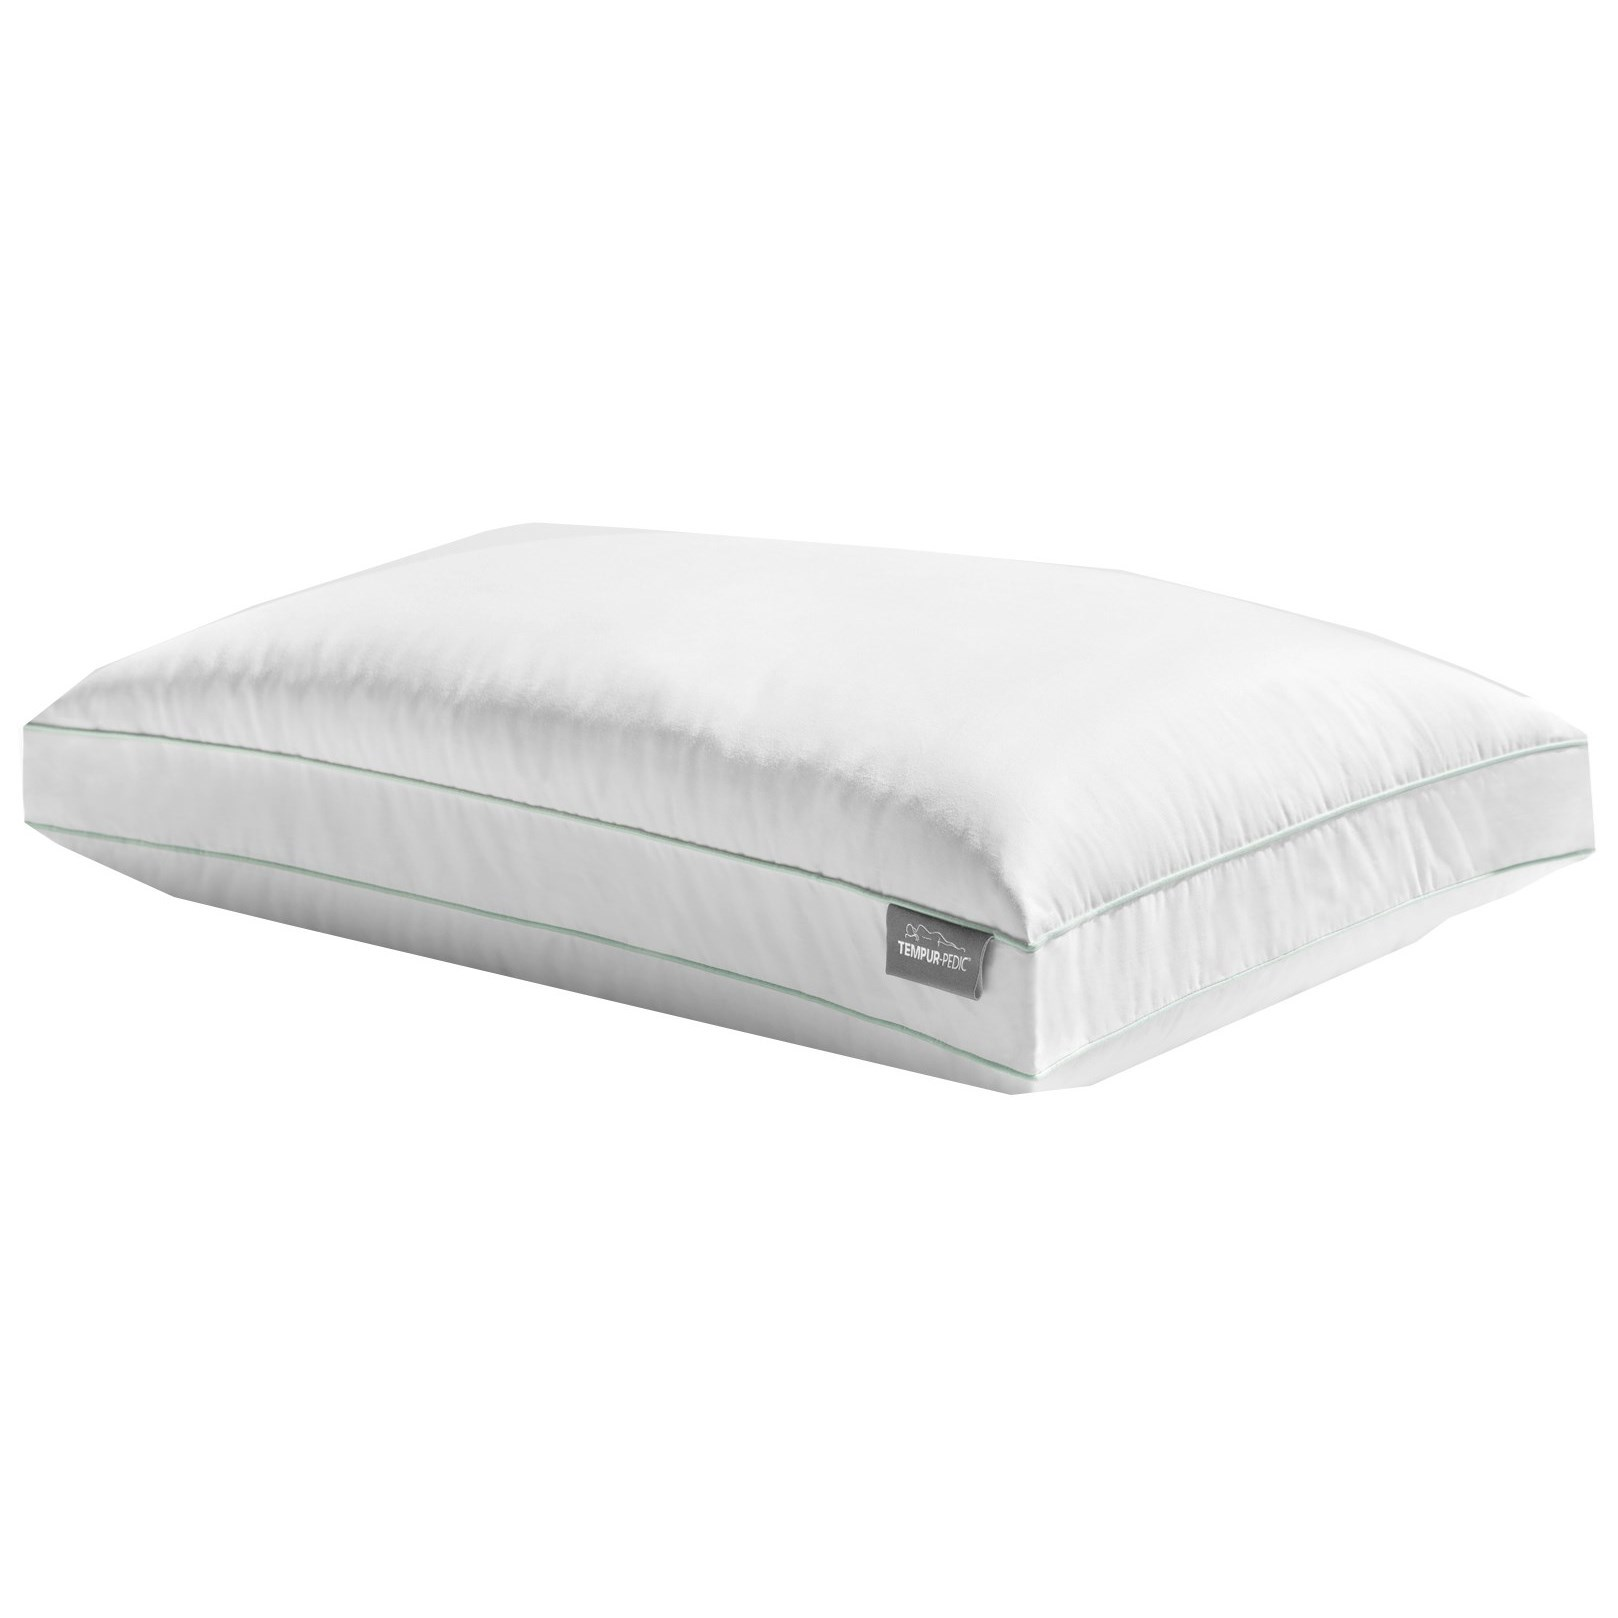 King Down Adjustable Support Pillow